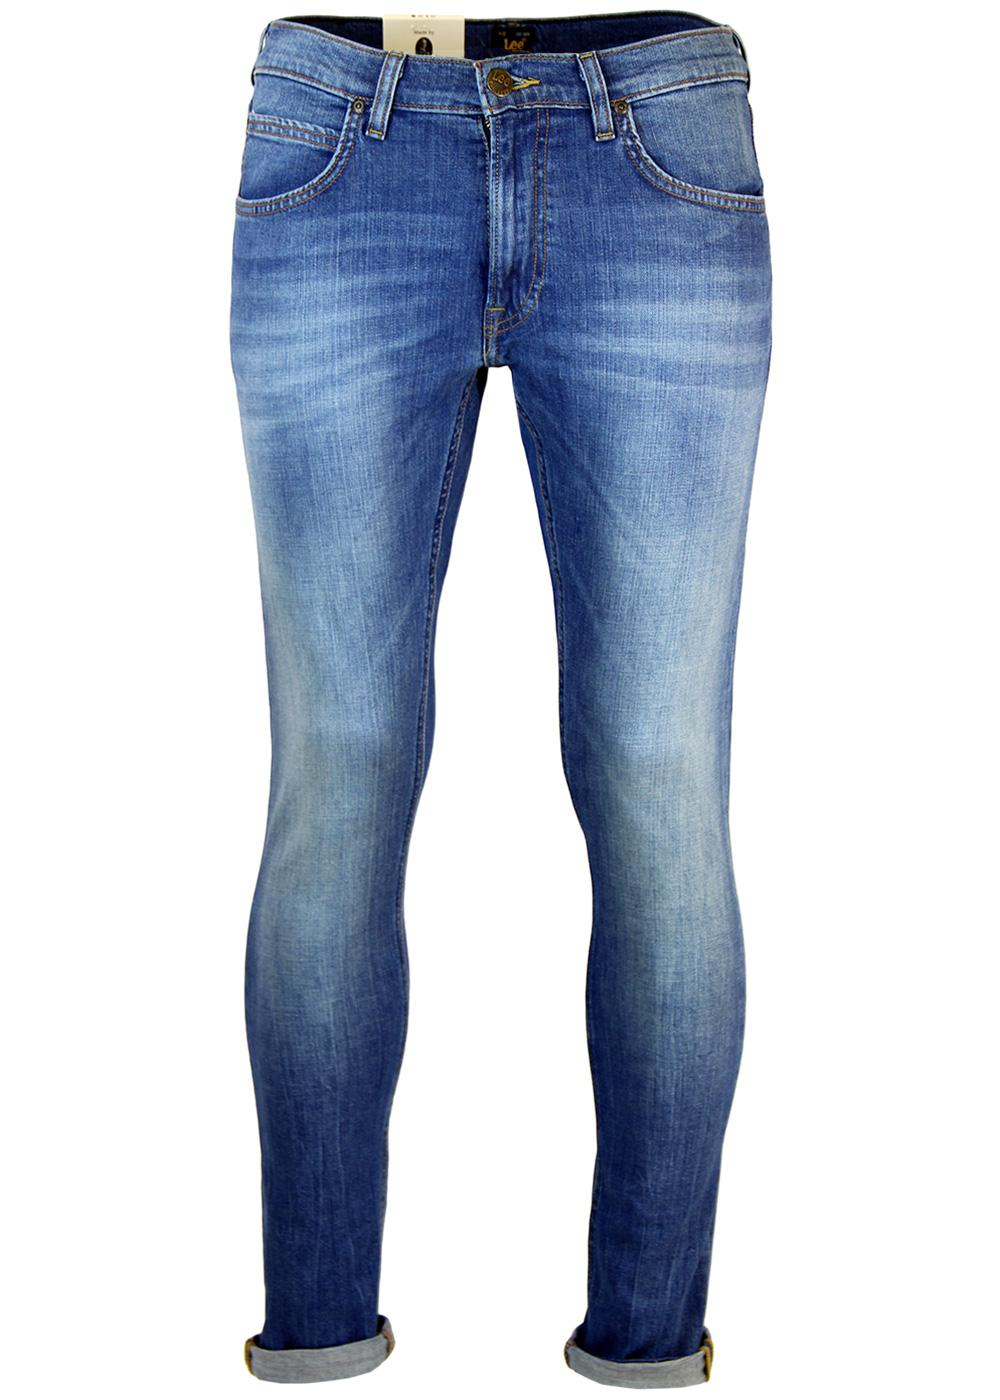 767cf915 LEE Luke Retro Indie Slim Tapered Denim Jeans in Authentic Blue